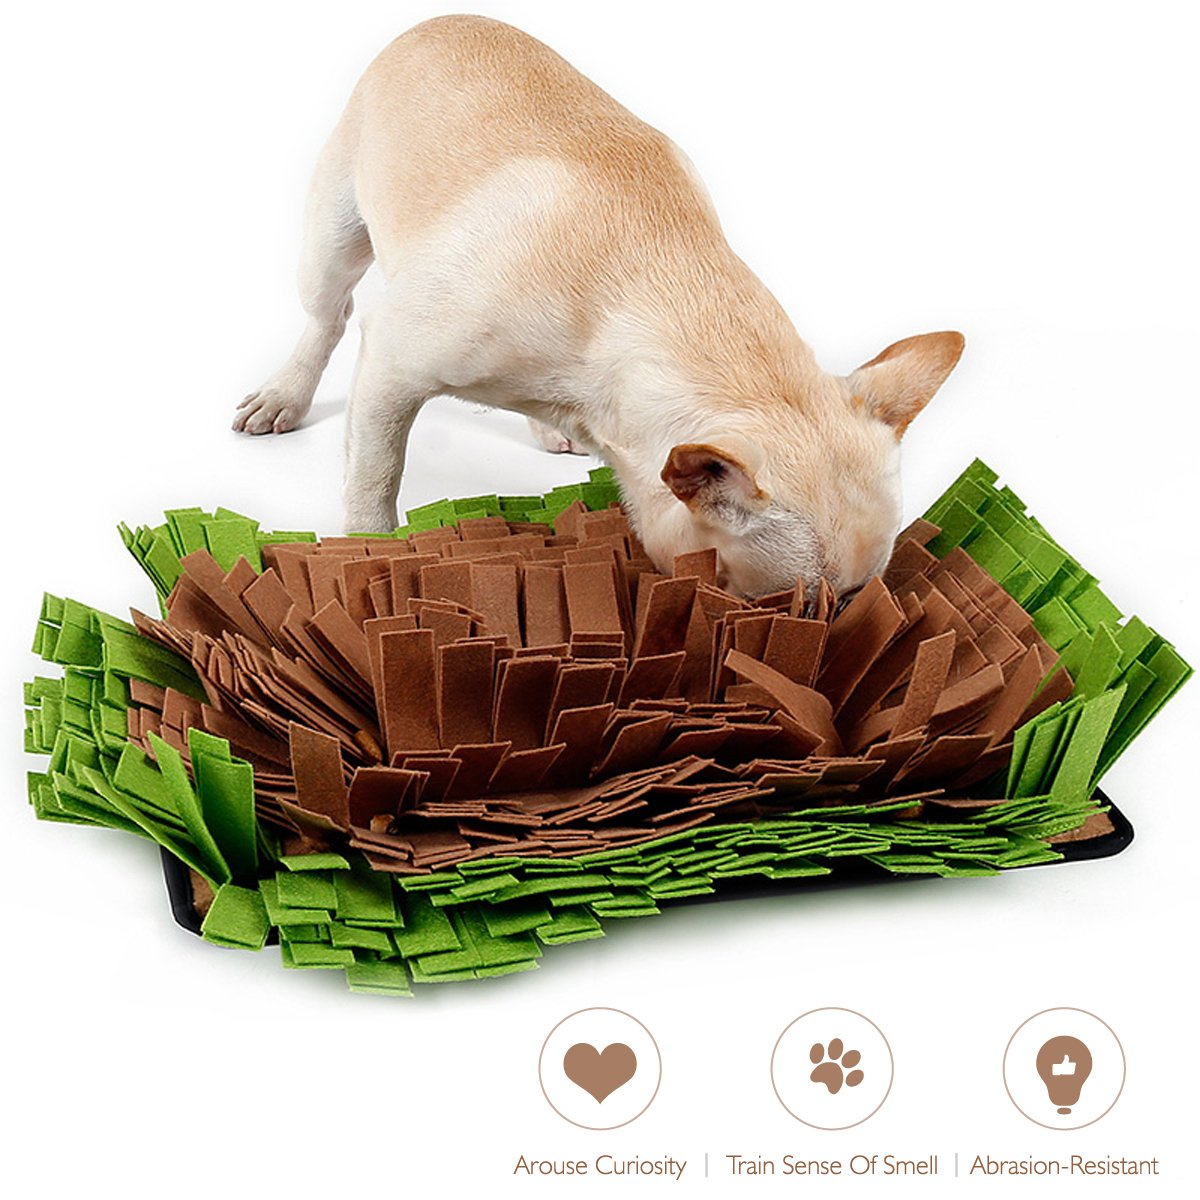 AISITIN Dog Snuffle Mat Feeding Mat,Dog Smell Training Mat Stress Release Nosework Blanket, Durable and Machine Washable Dogs Puzzle Toys, Encourages Natural Foraging Skills